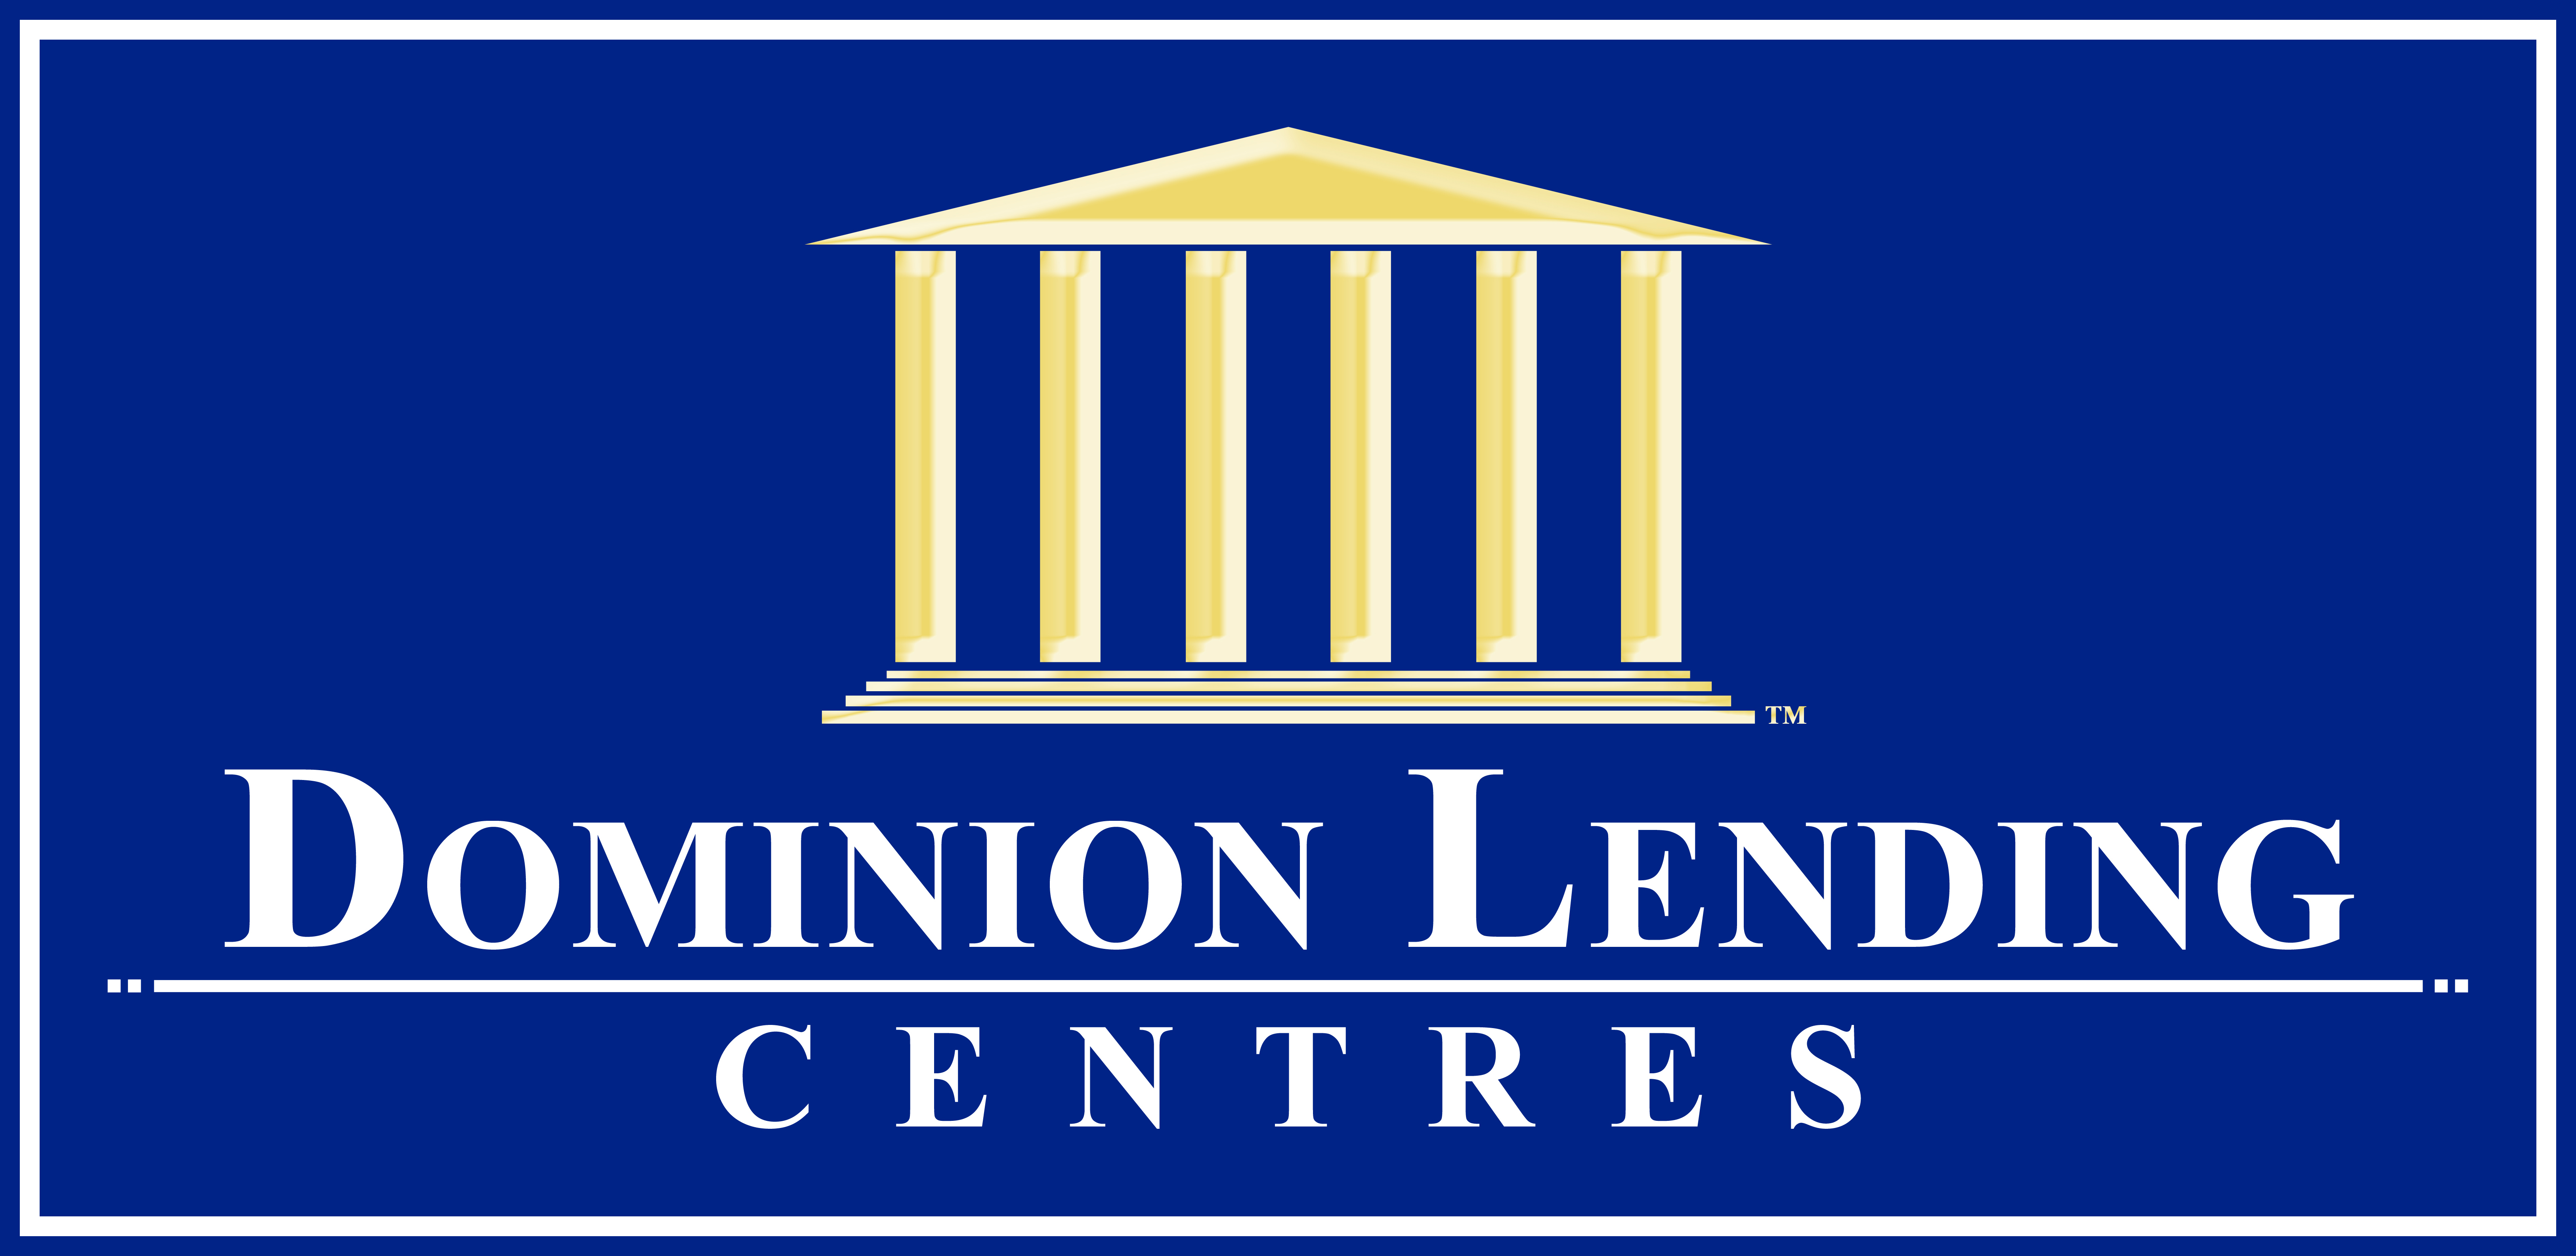 Right At Home Realty Inc and Dominion Lending Centres Announce